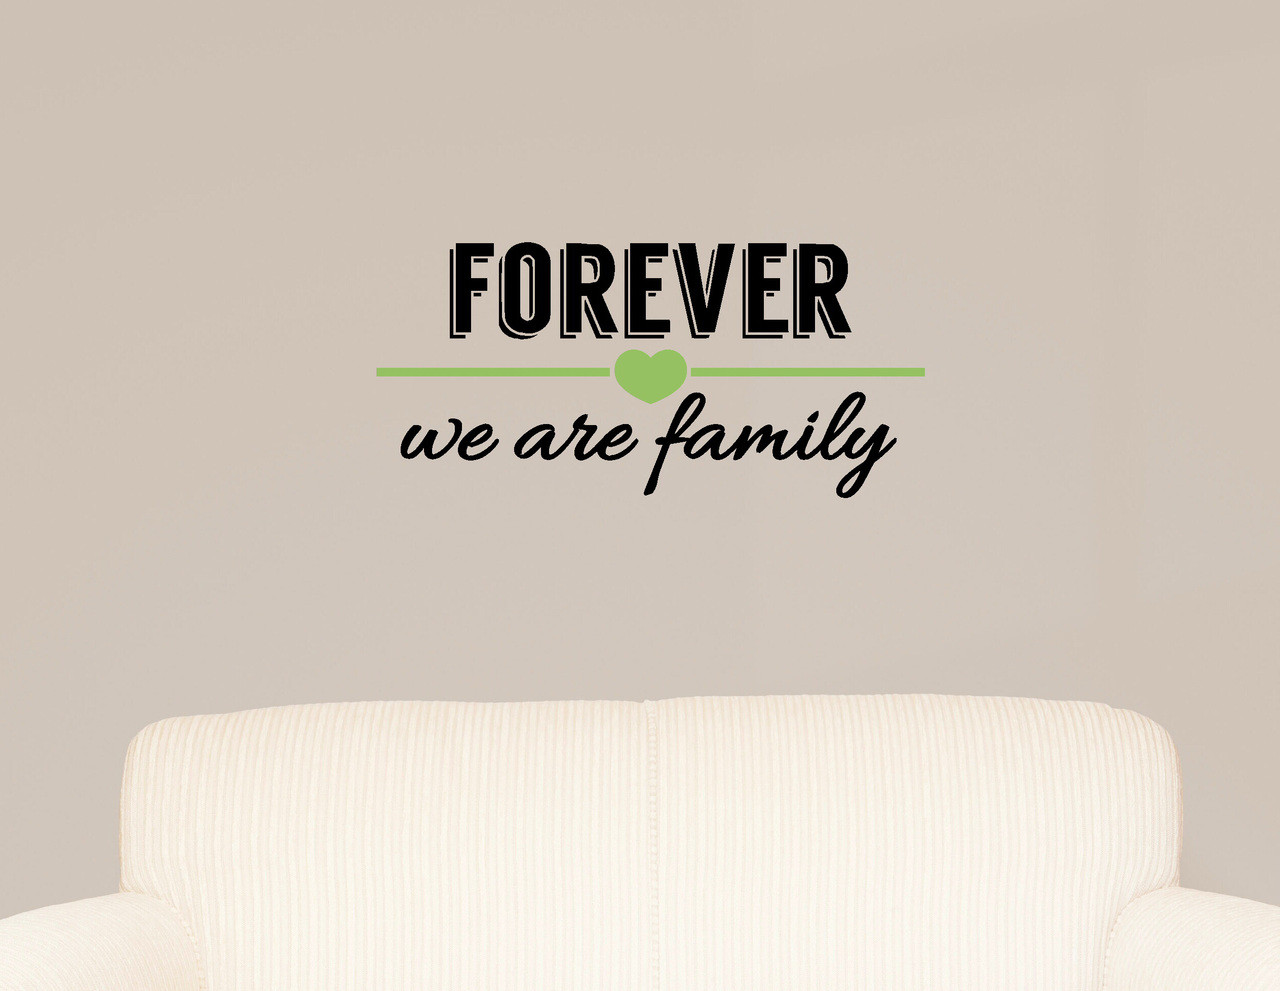 Forever We Are Family Wall Decal Lettering Vinyl Sticker Black, Celadon.  Loading Zoom